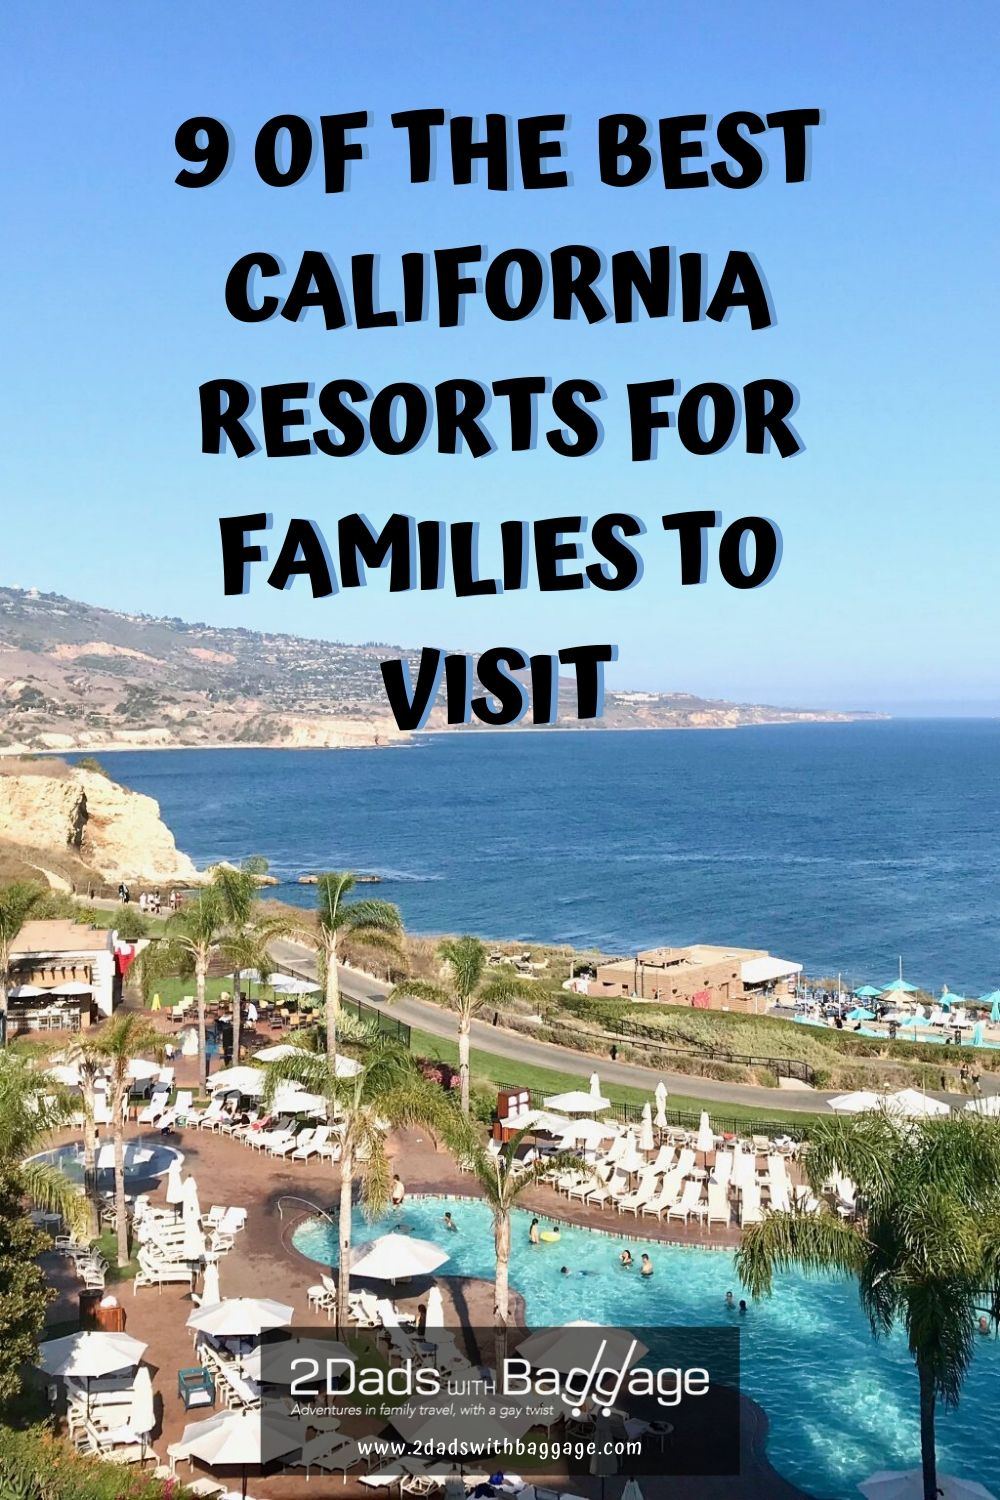 Best California Resort for families to Visit